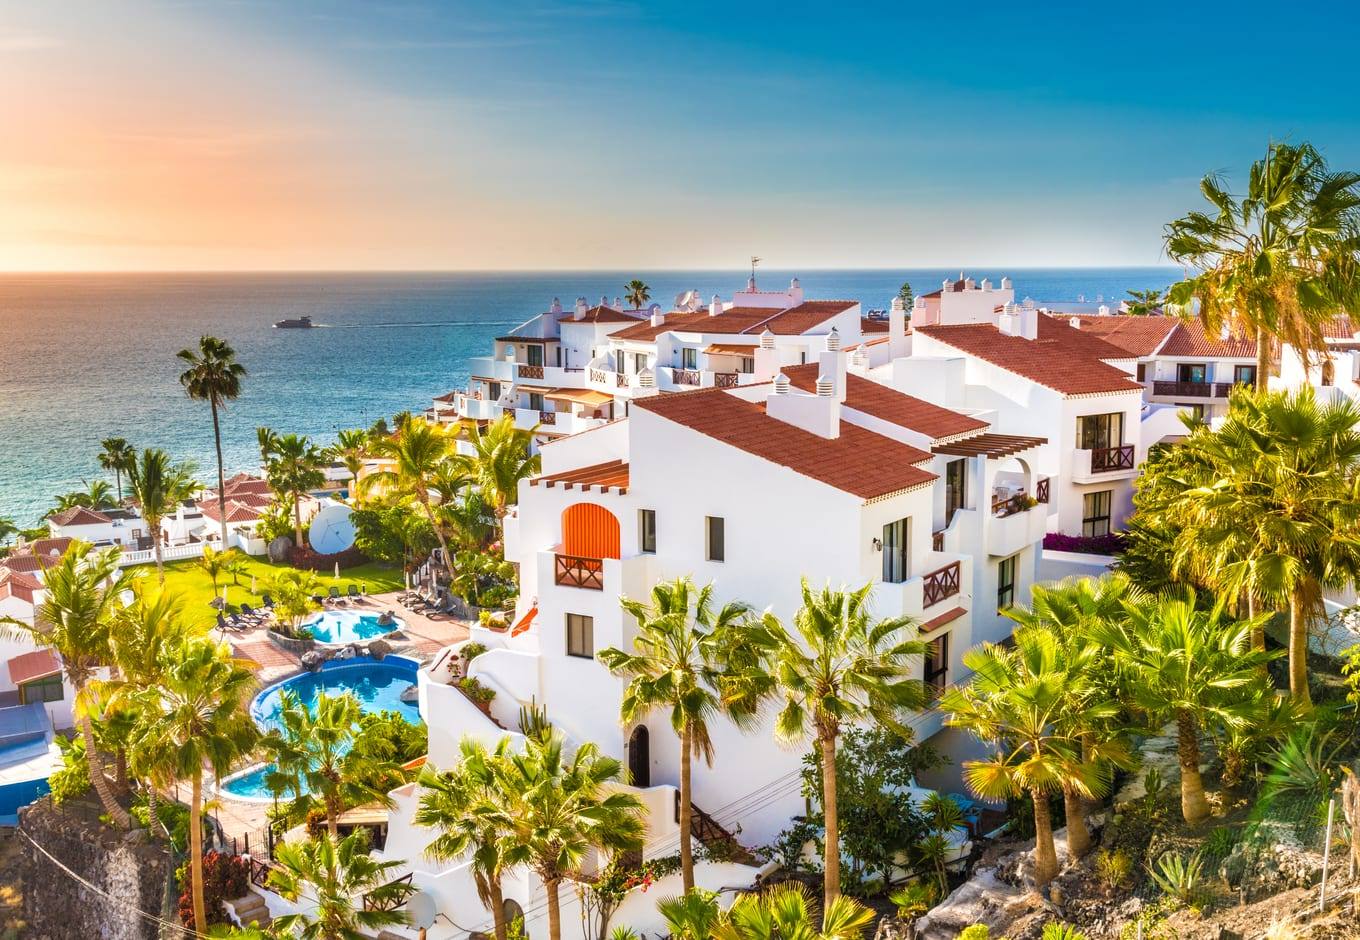 View of a seaside hotel surrounded by palm trees in Tenerife, Canary Islands, Spain.